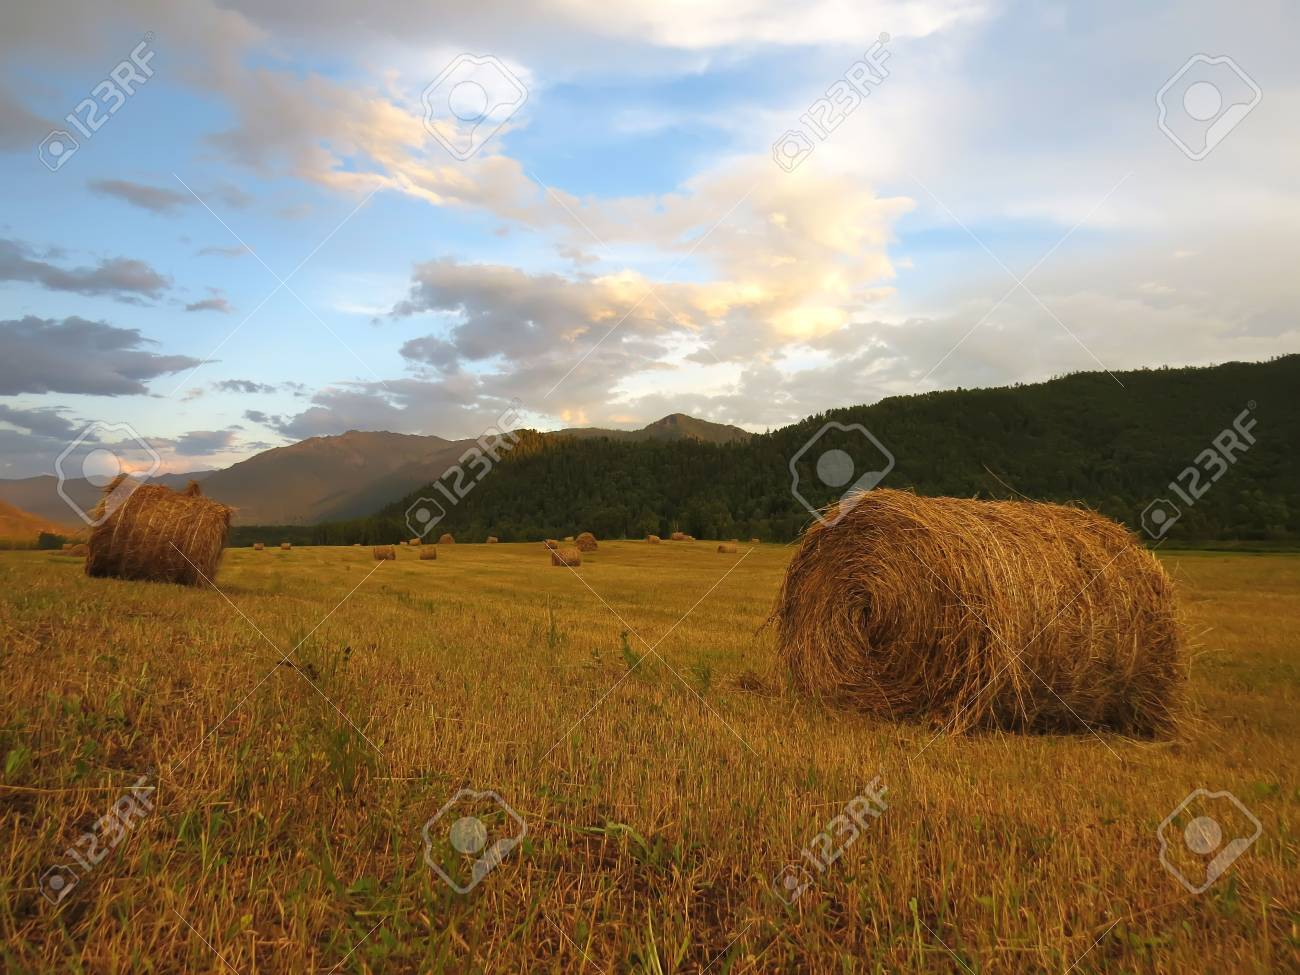 Rolls Of Hay Among The Mountains